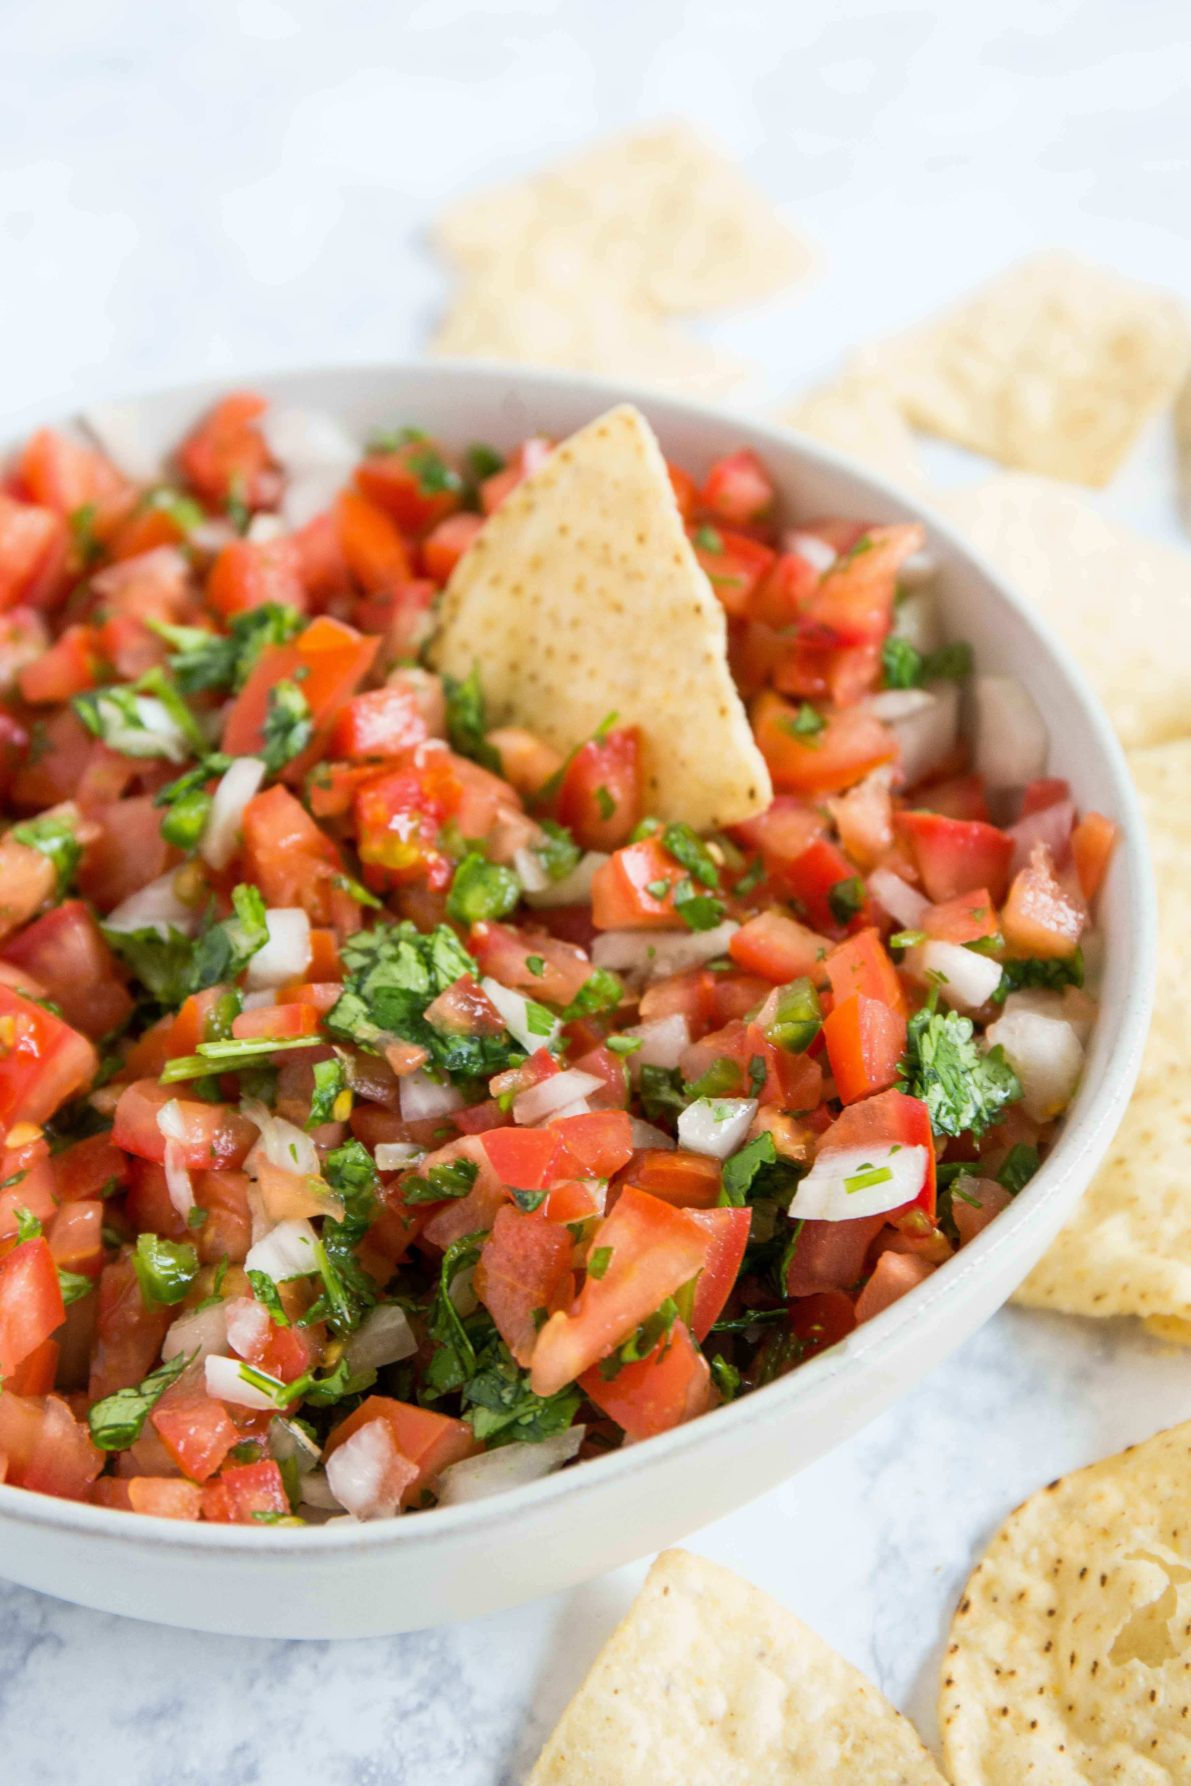 Pico de gallo in a bowl with chips around it.